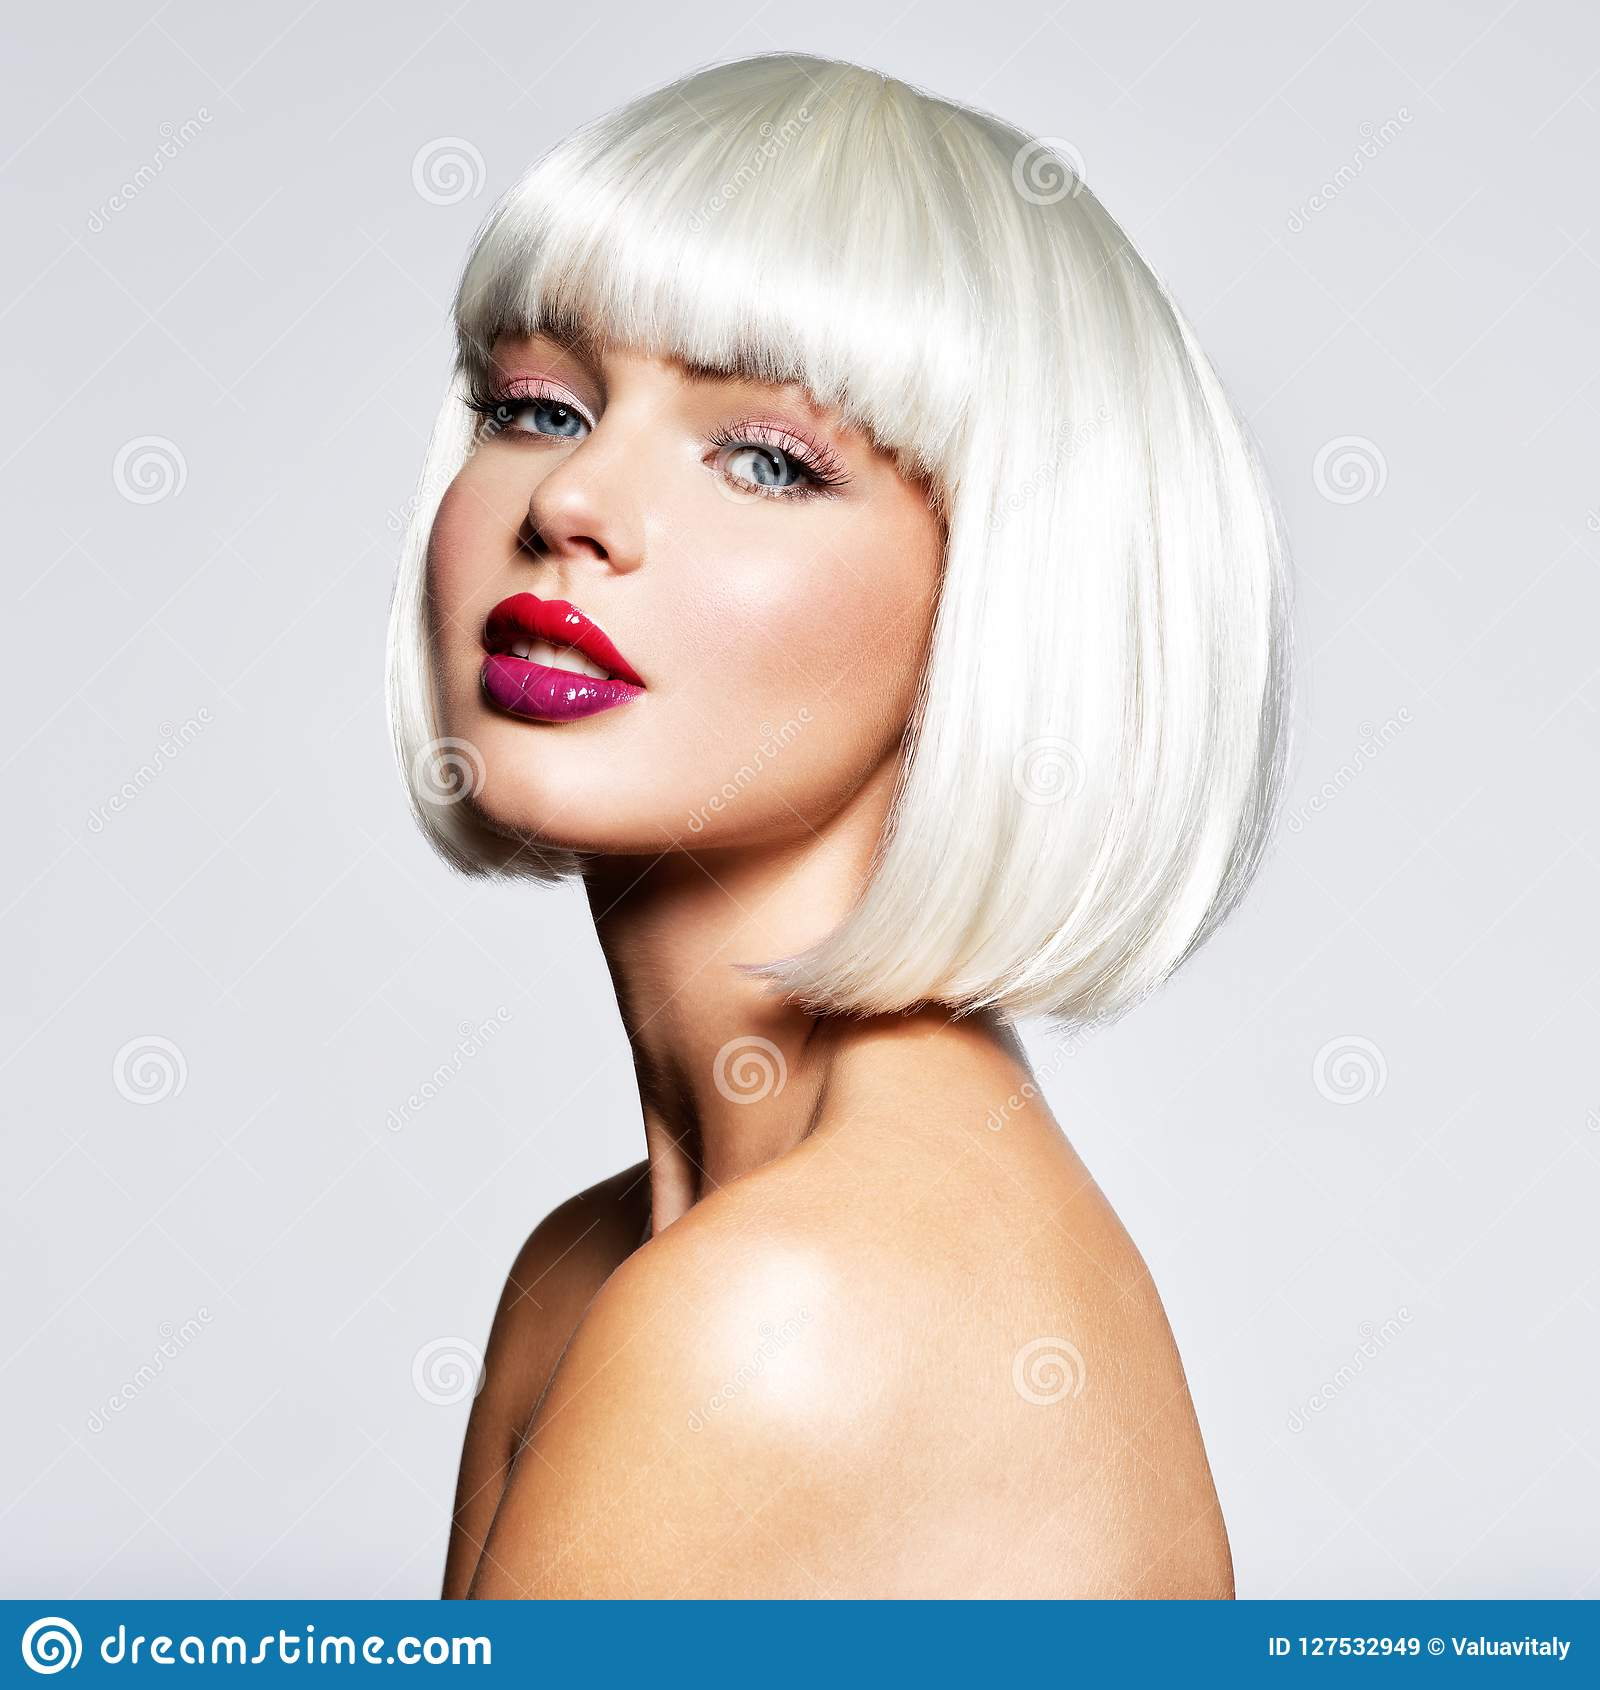 8950868070f Fashion Stylish Portrait with White Short Hair. Beautiful Girl`s Face with  Haircut. Hairstyle. Fringe. Professional Makeup. Make-up. Fashion portrait  of ...